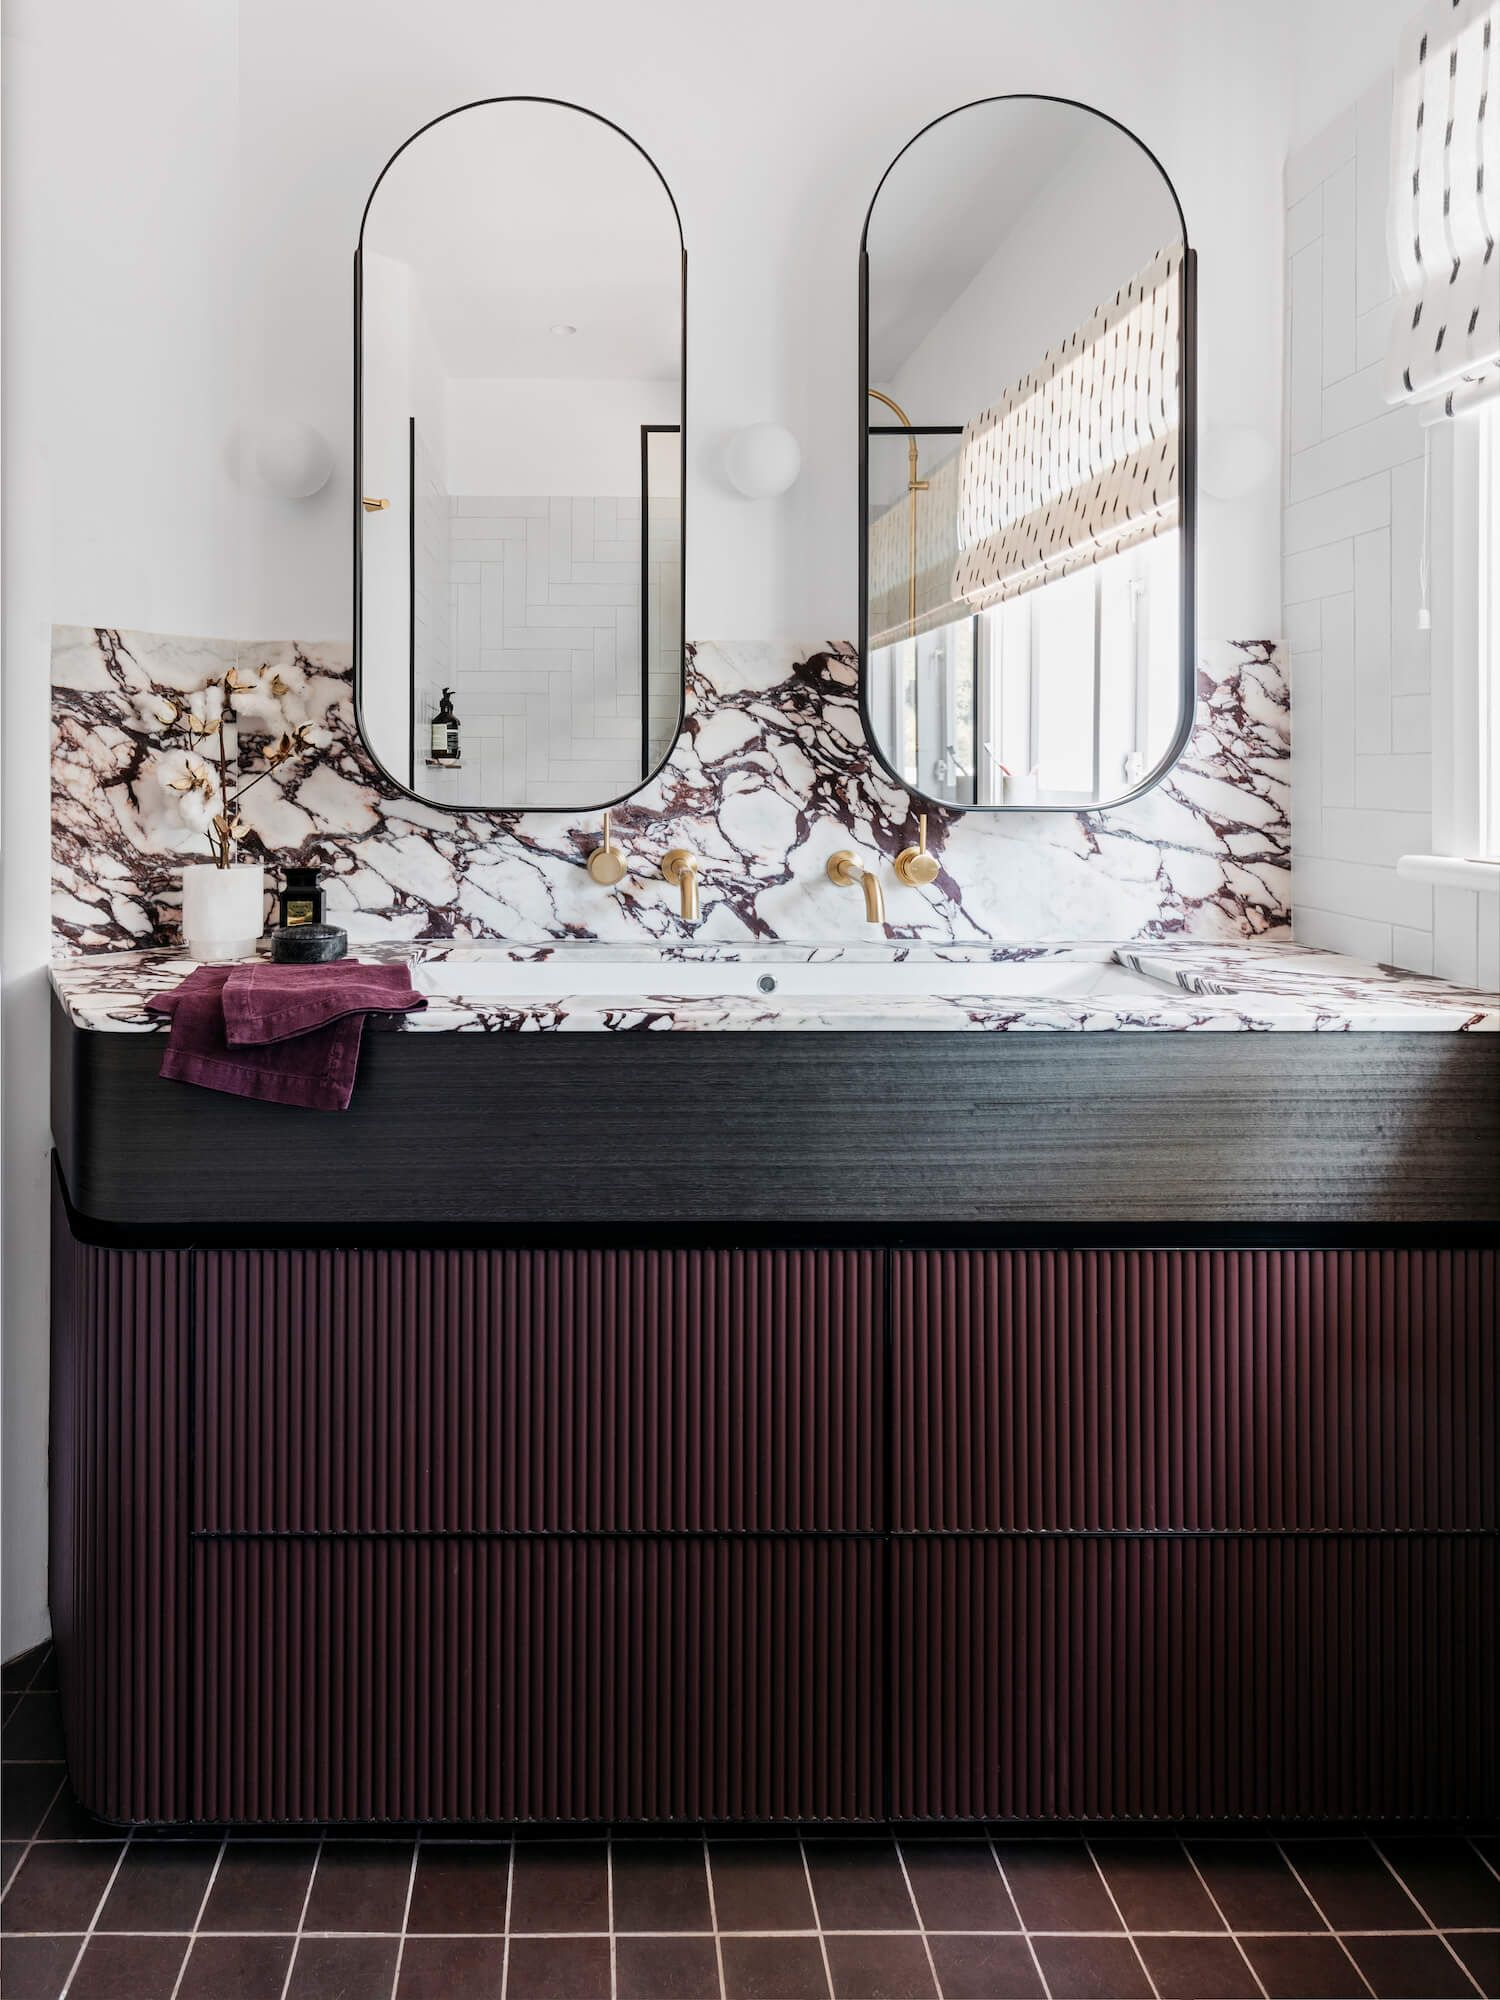 bathroom, white wall, black floor tiles, white marble top and bakcsplash, black lines, dark cabinet